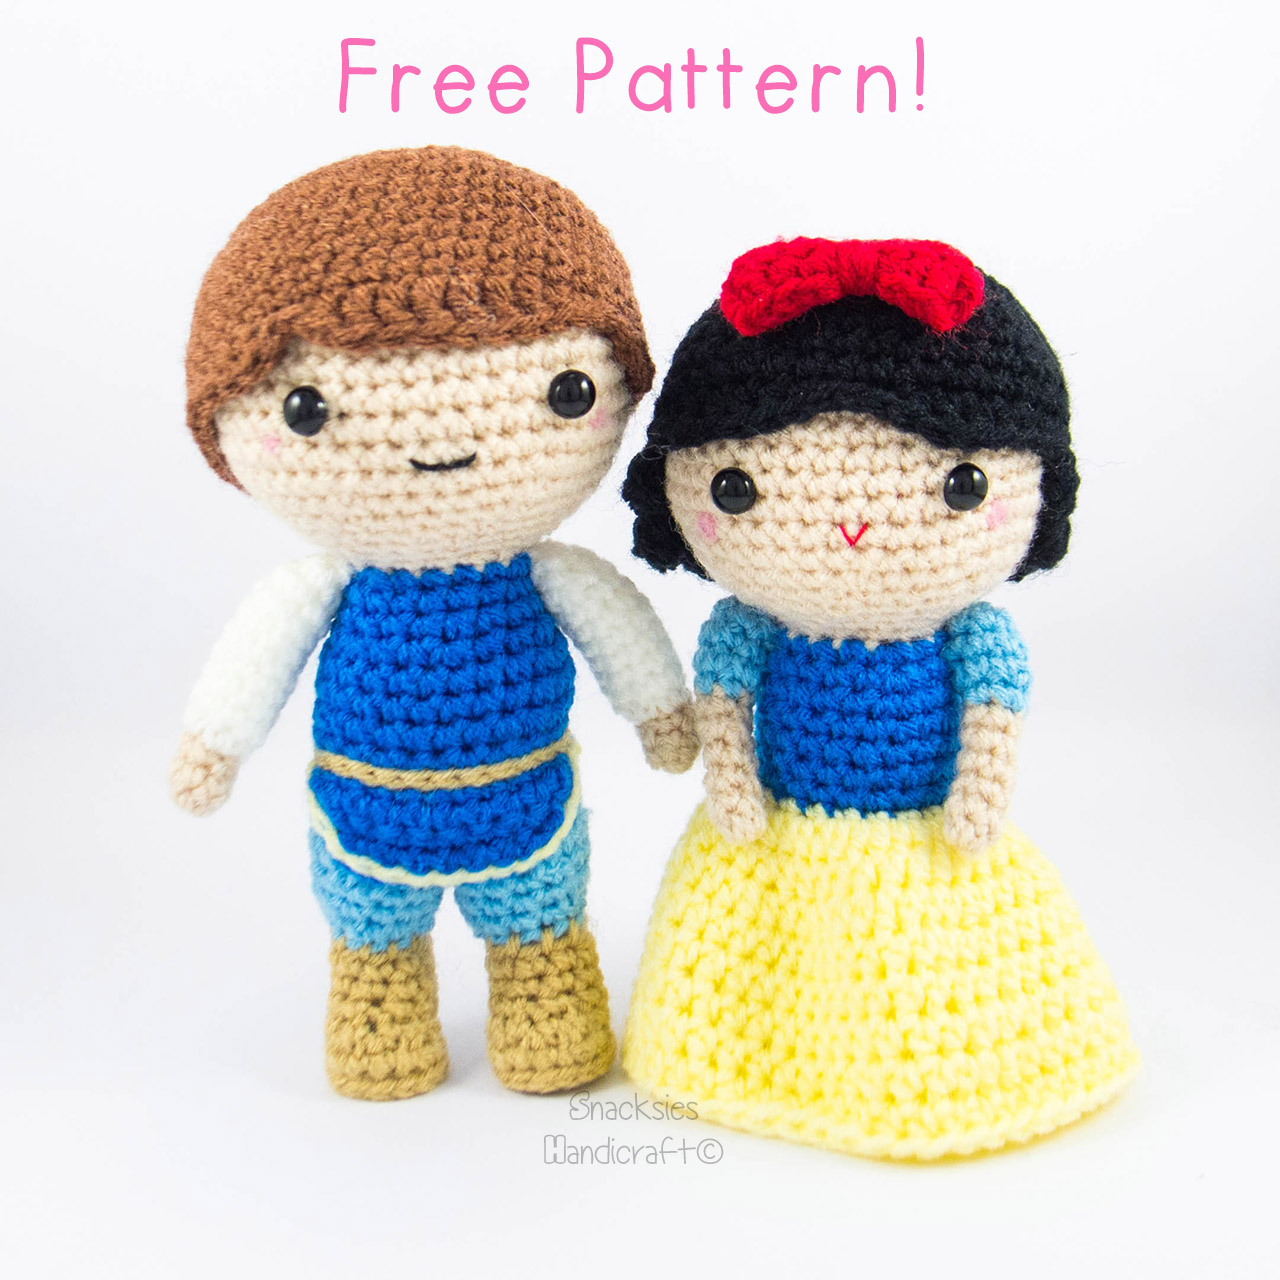 ... -fortune-snow-white-and-prince-amigurumi-free-pattern-watermark.jpg